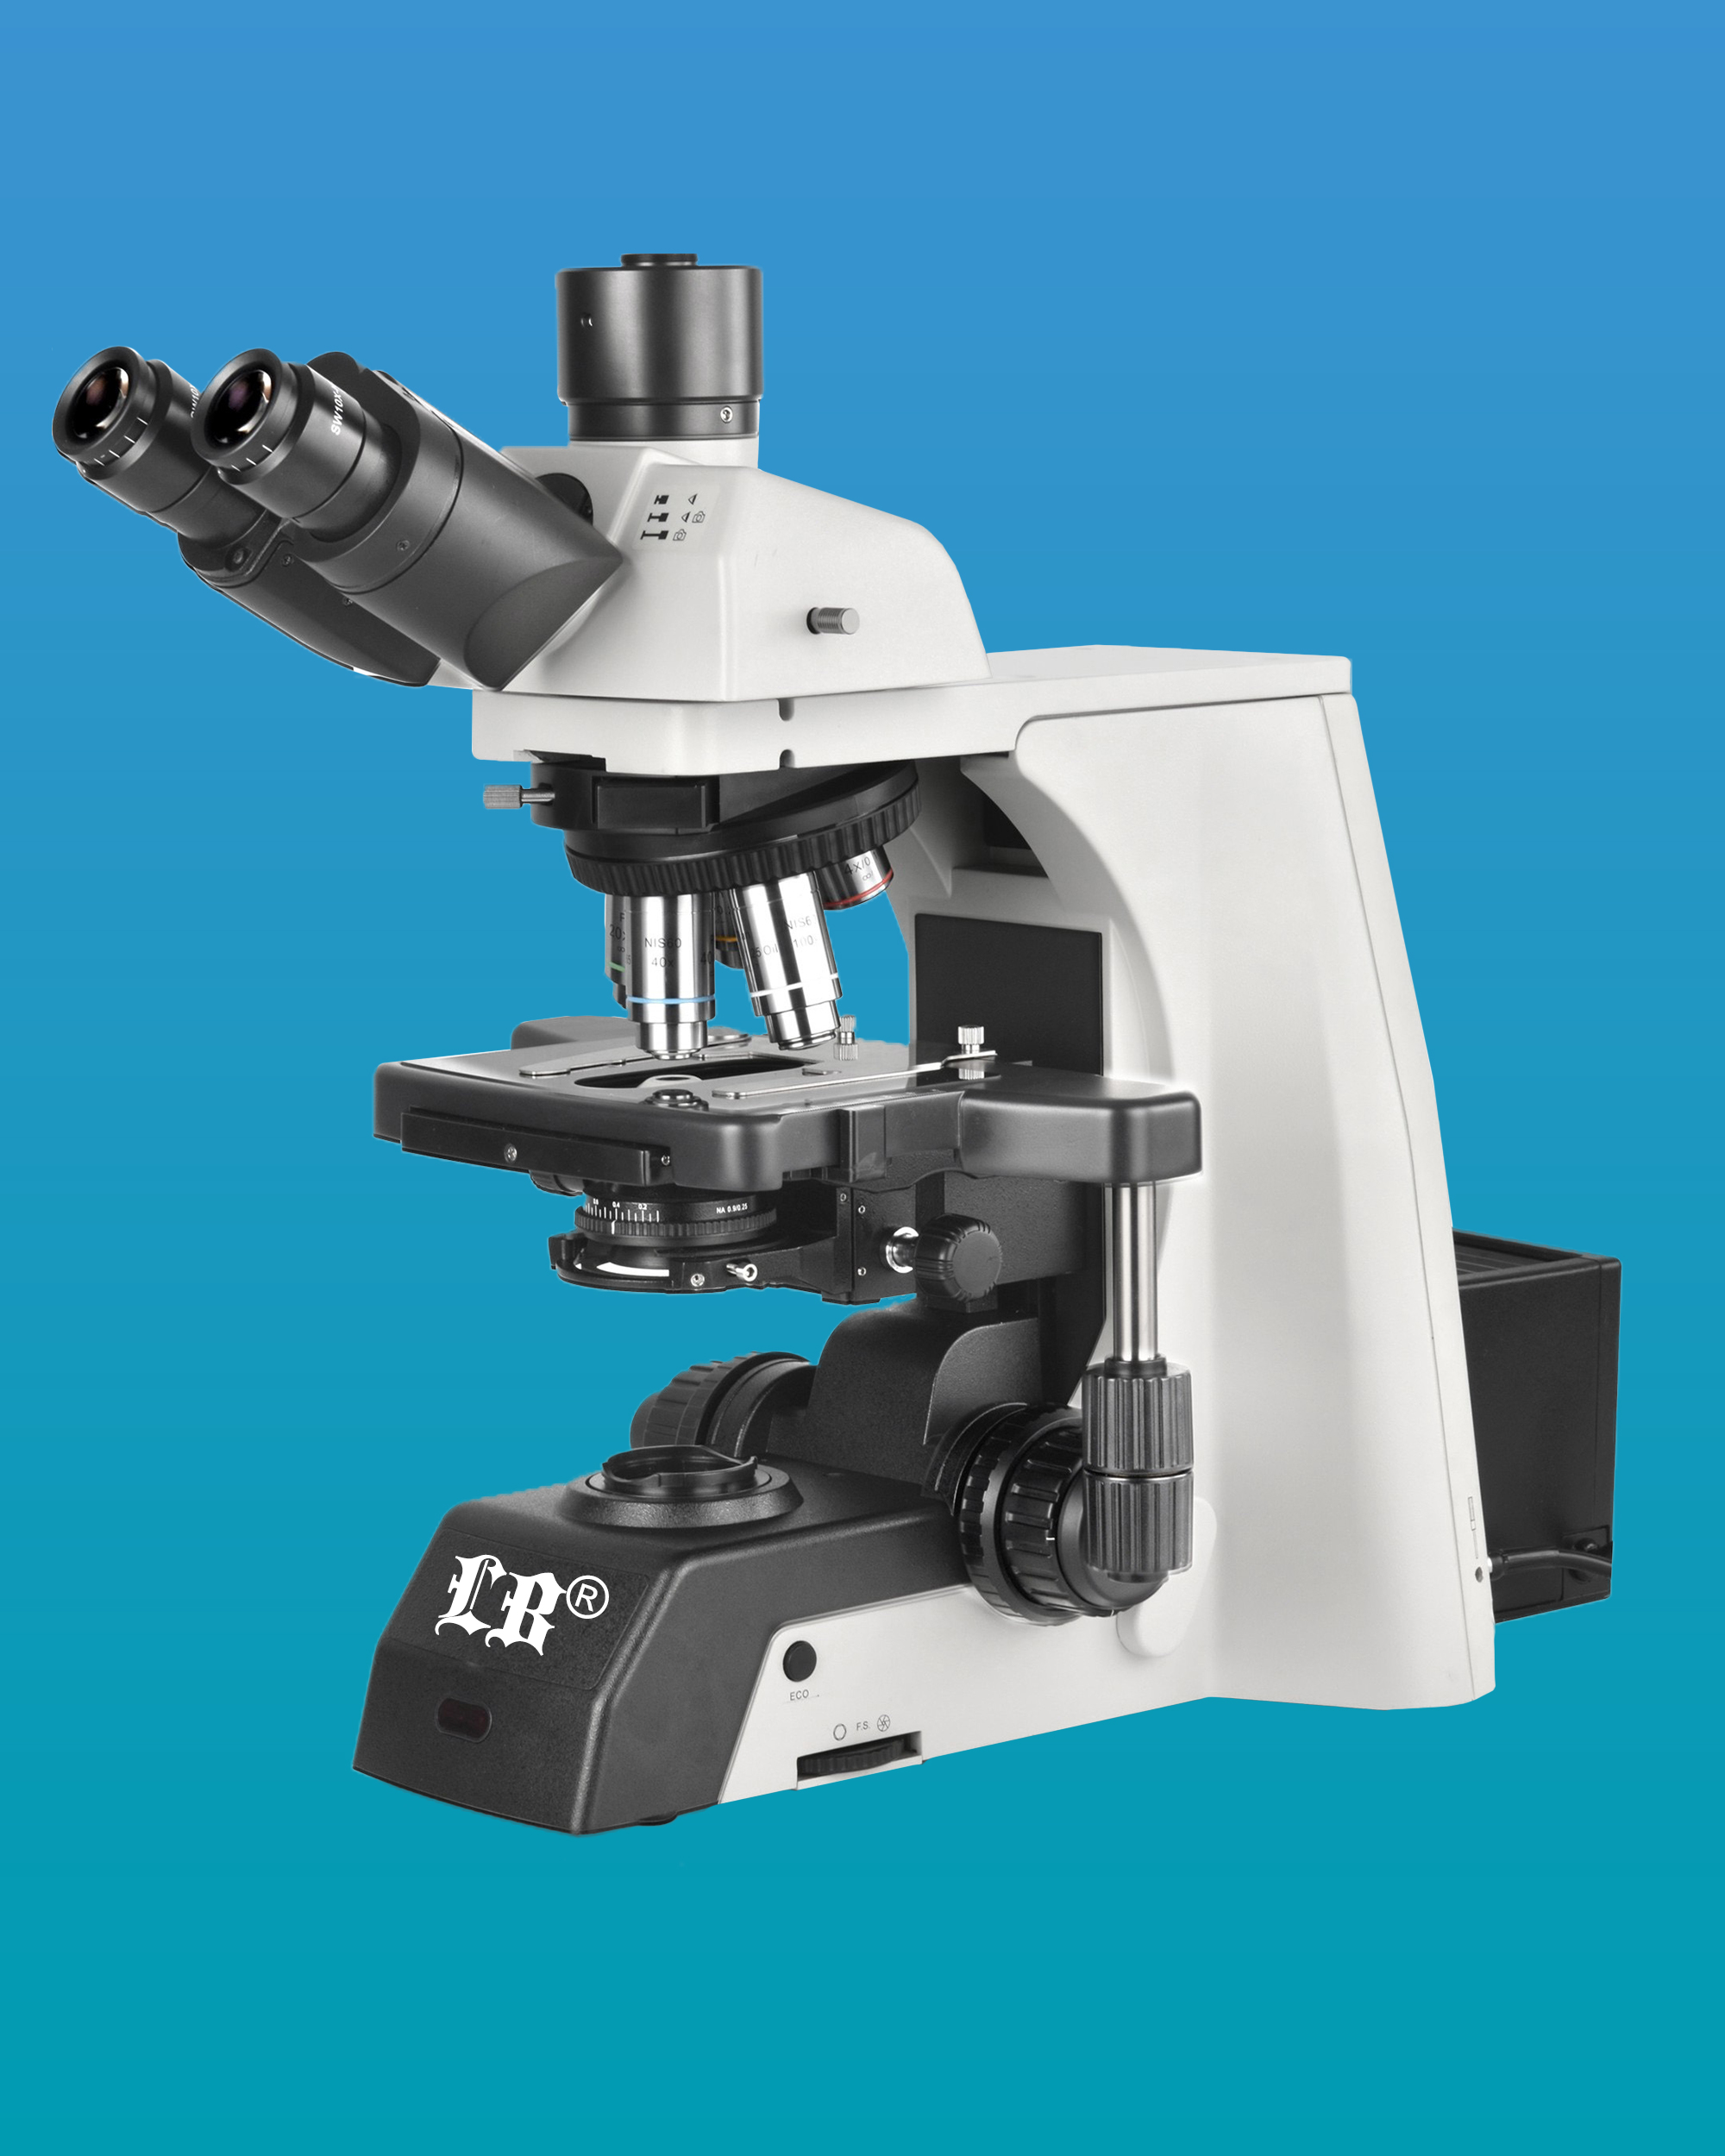 [LB-285] Research Biological Microscope